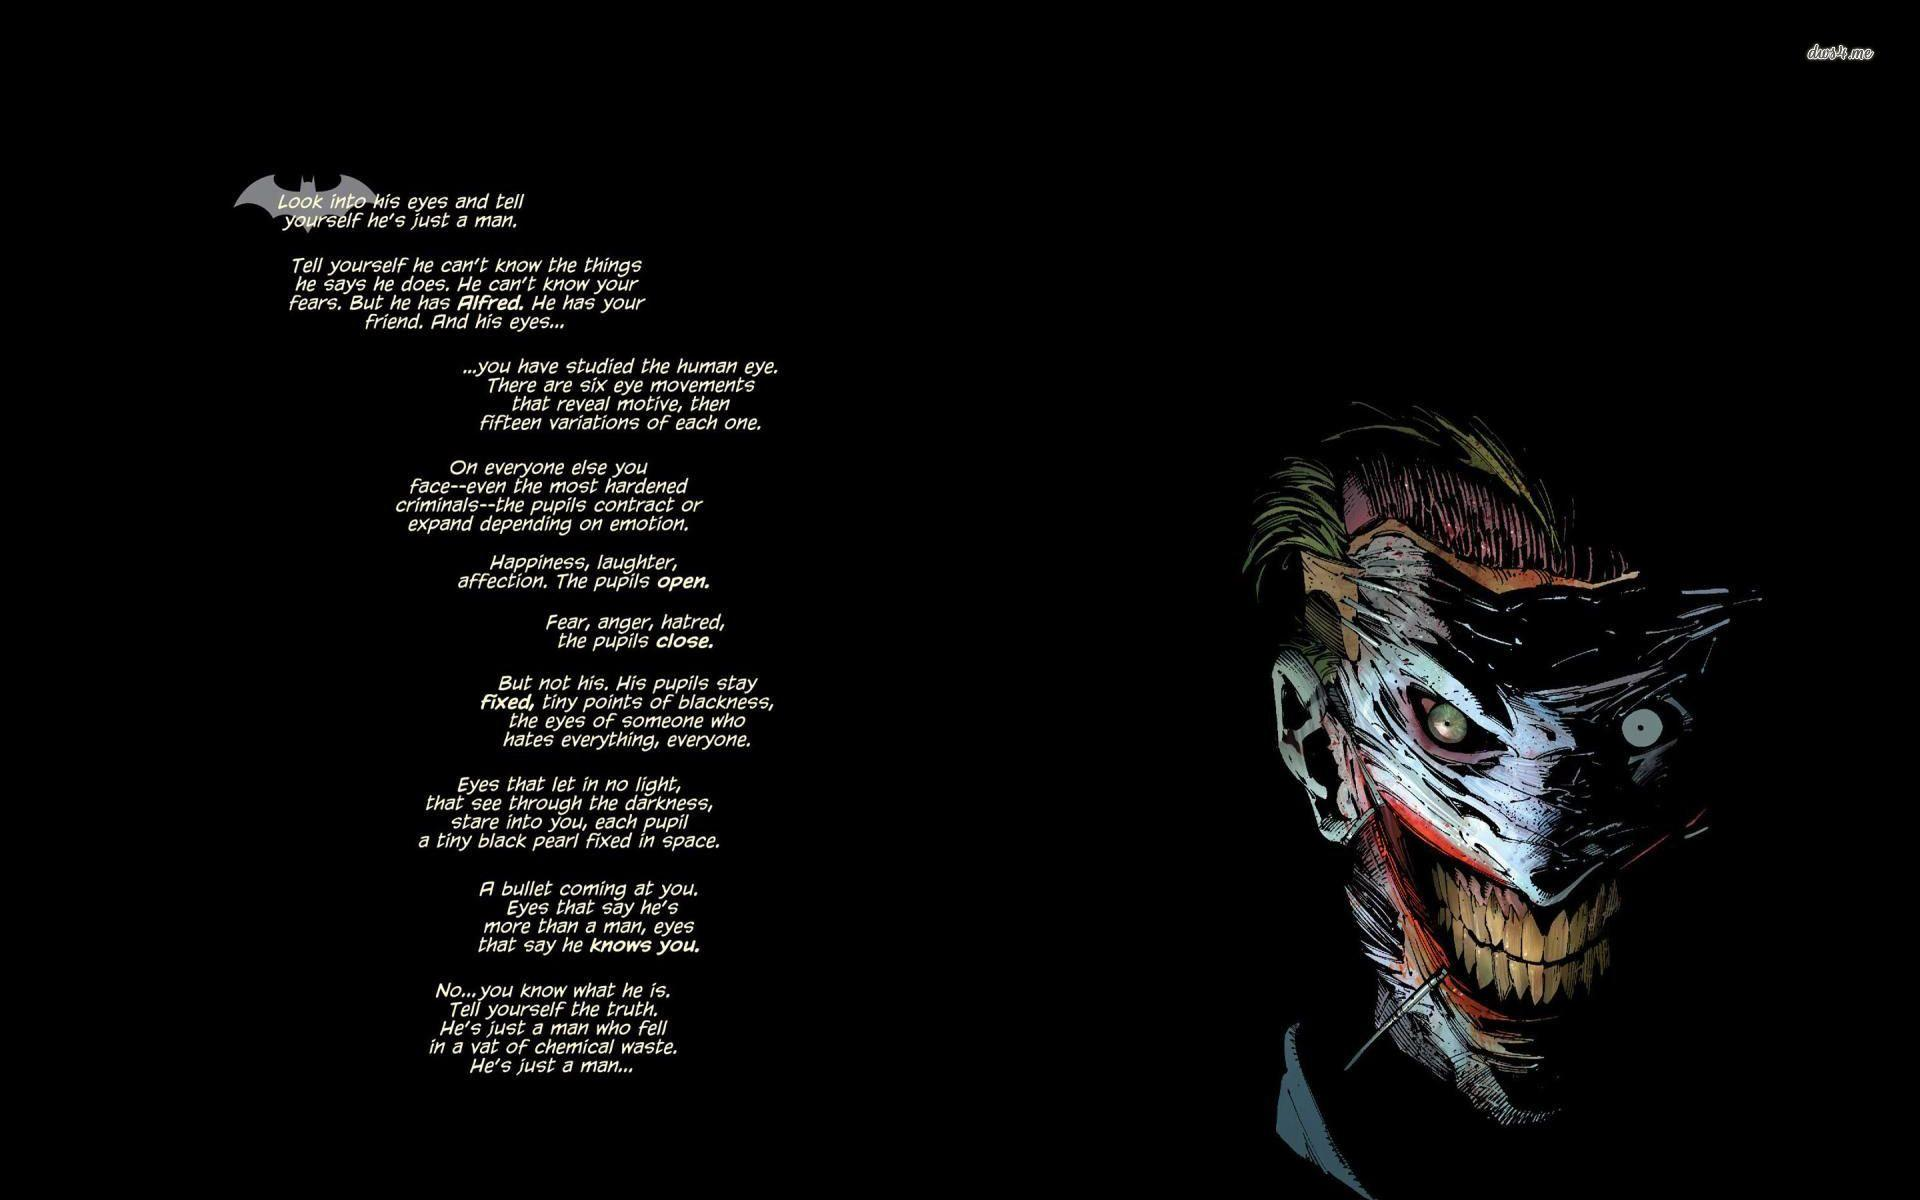 Joker Quotes If You Are Good At Something Wallpaper 15967 Softblog